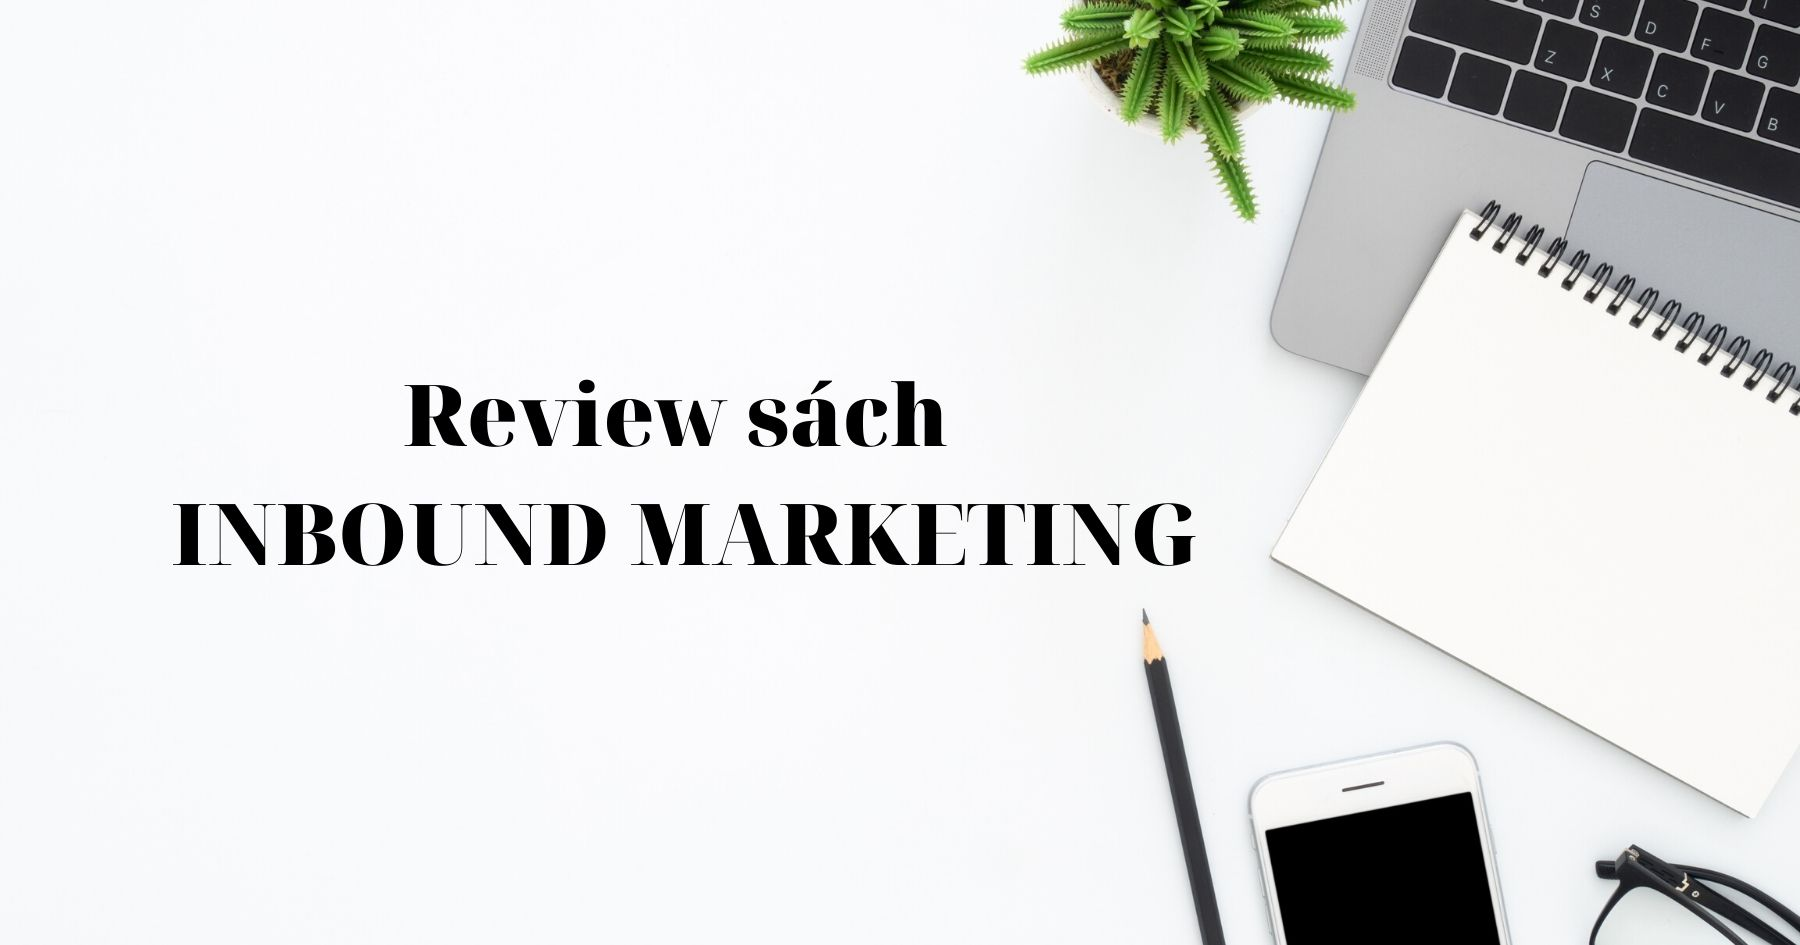 review-sach-inbound-marketing.jpg